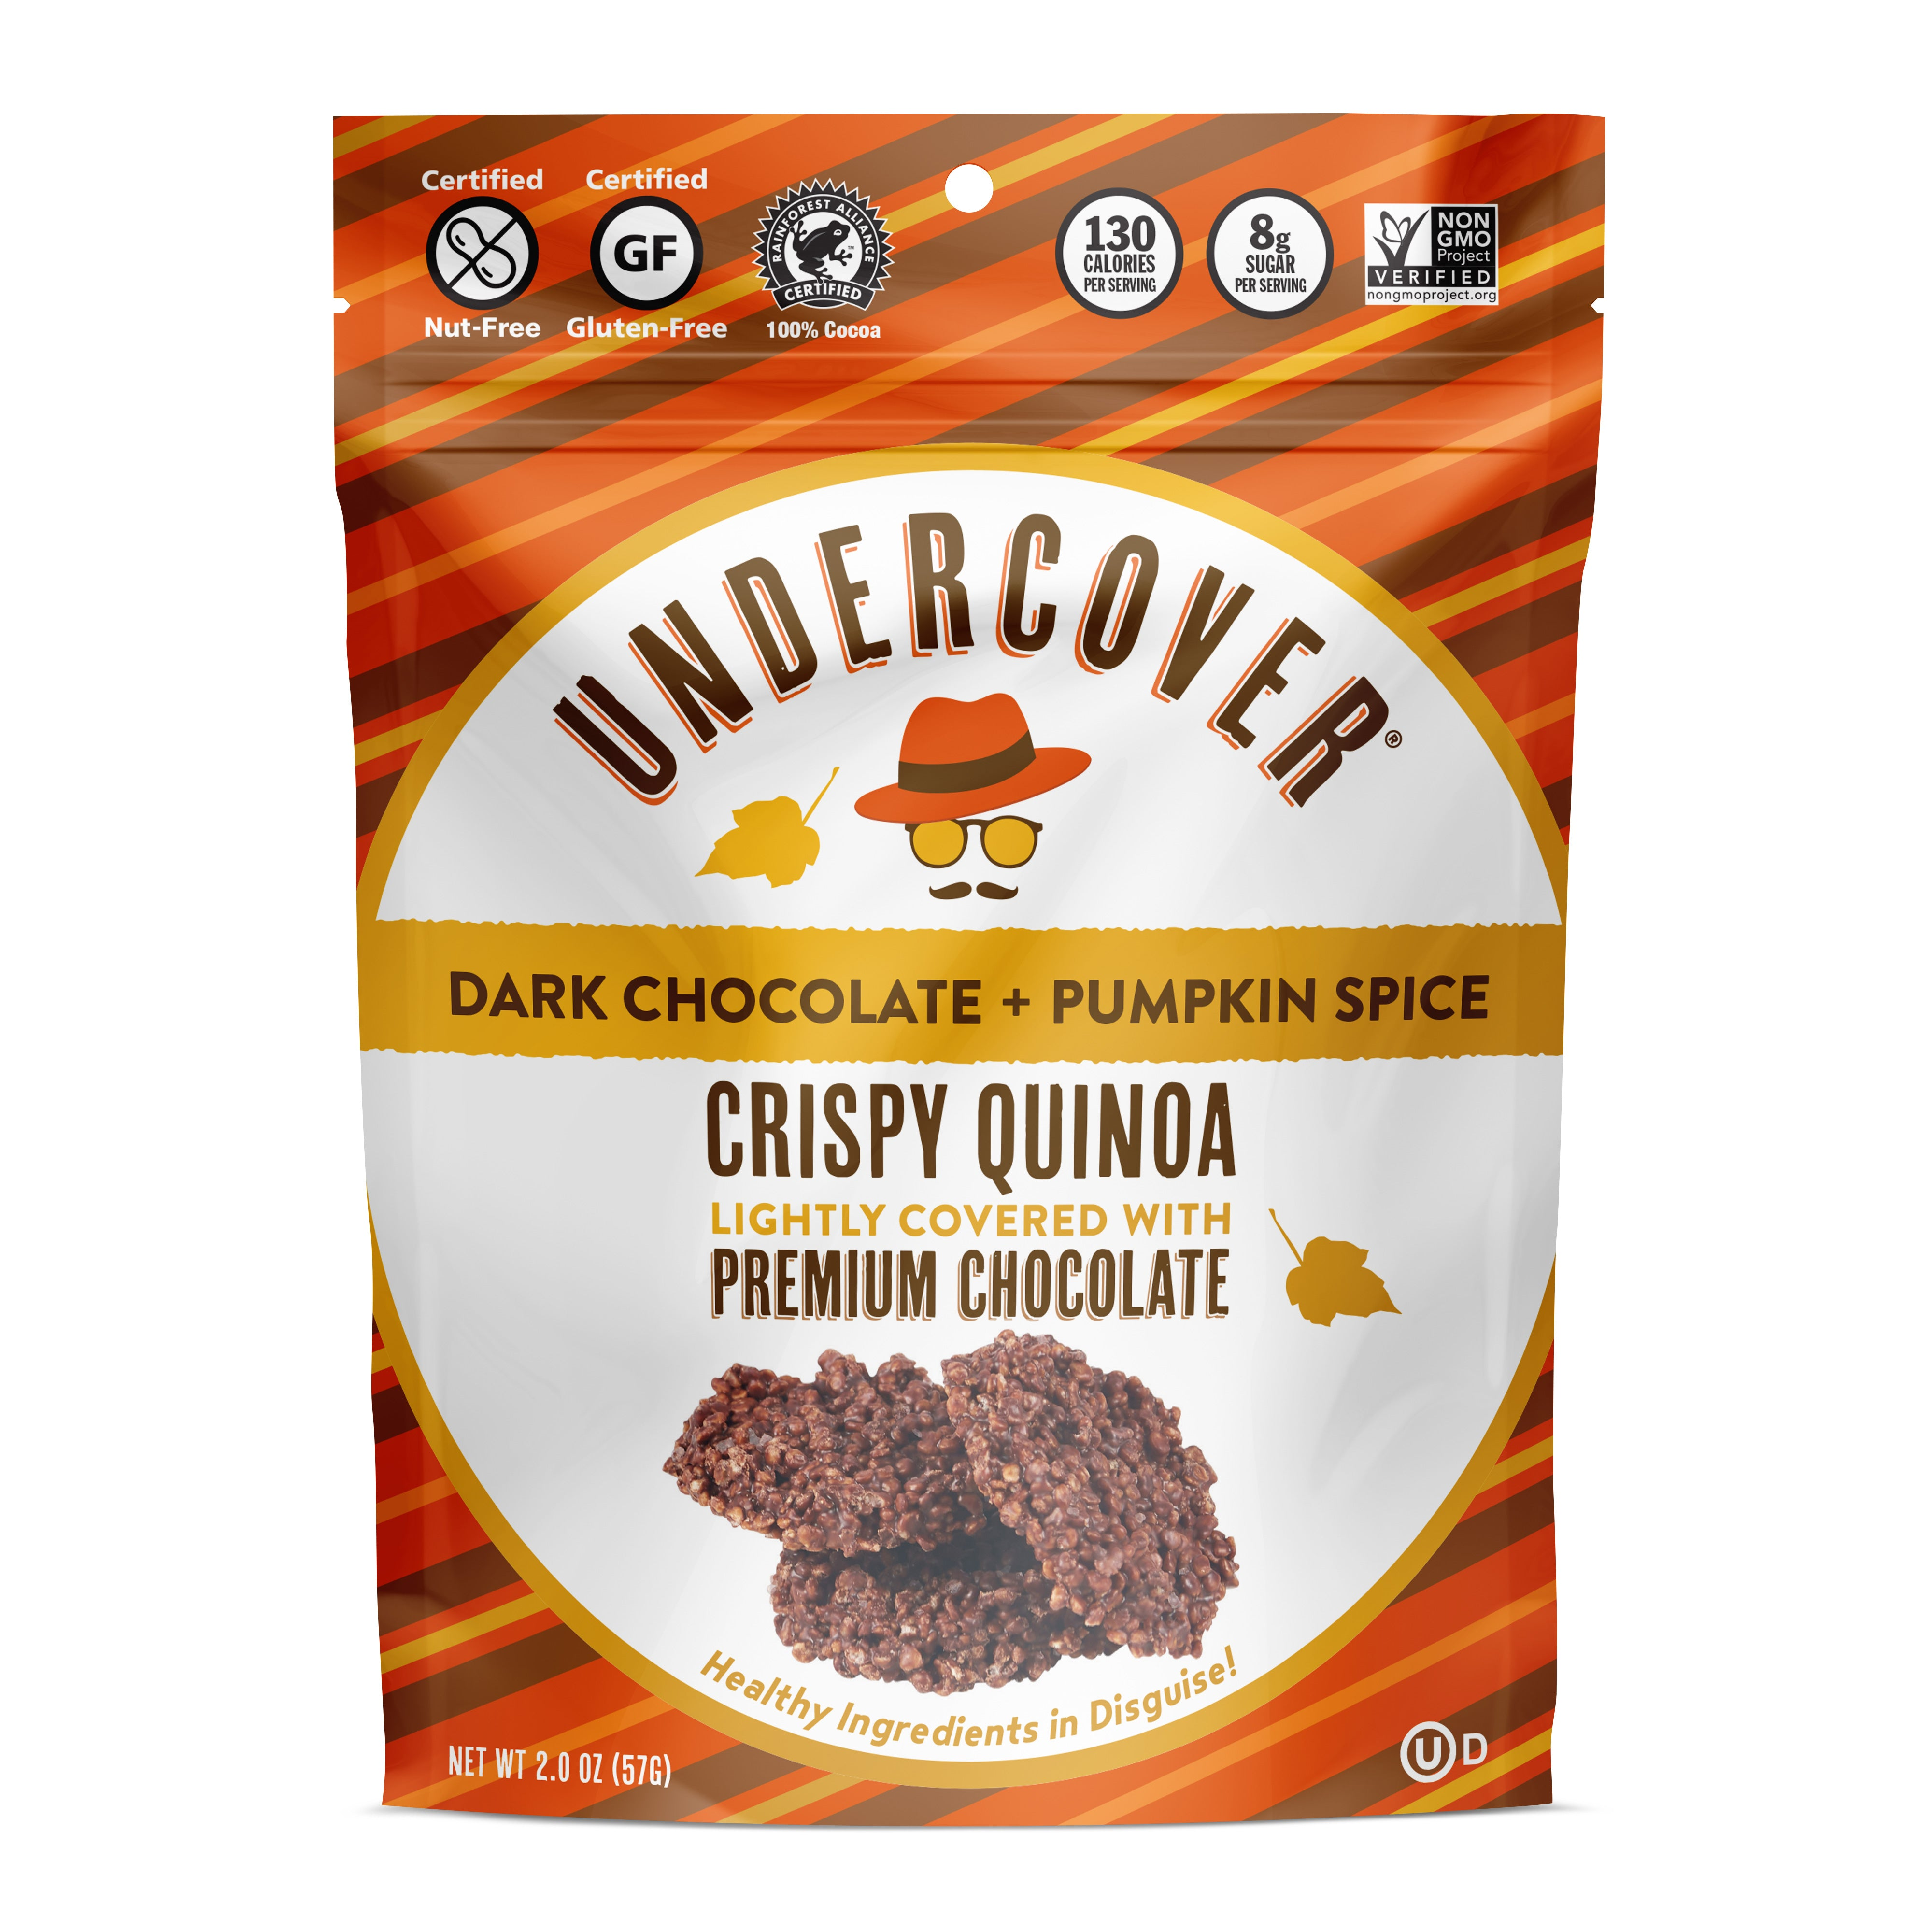 Crispy Chocolate Quinoa